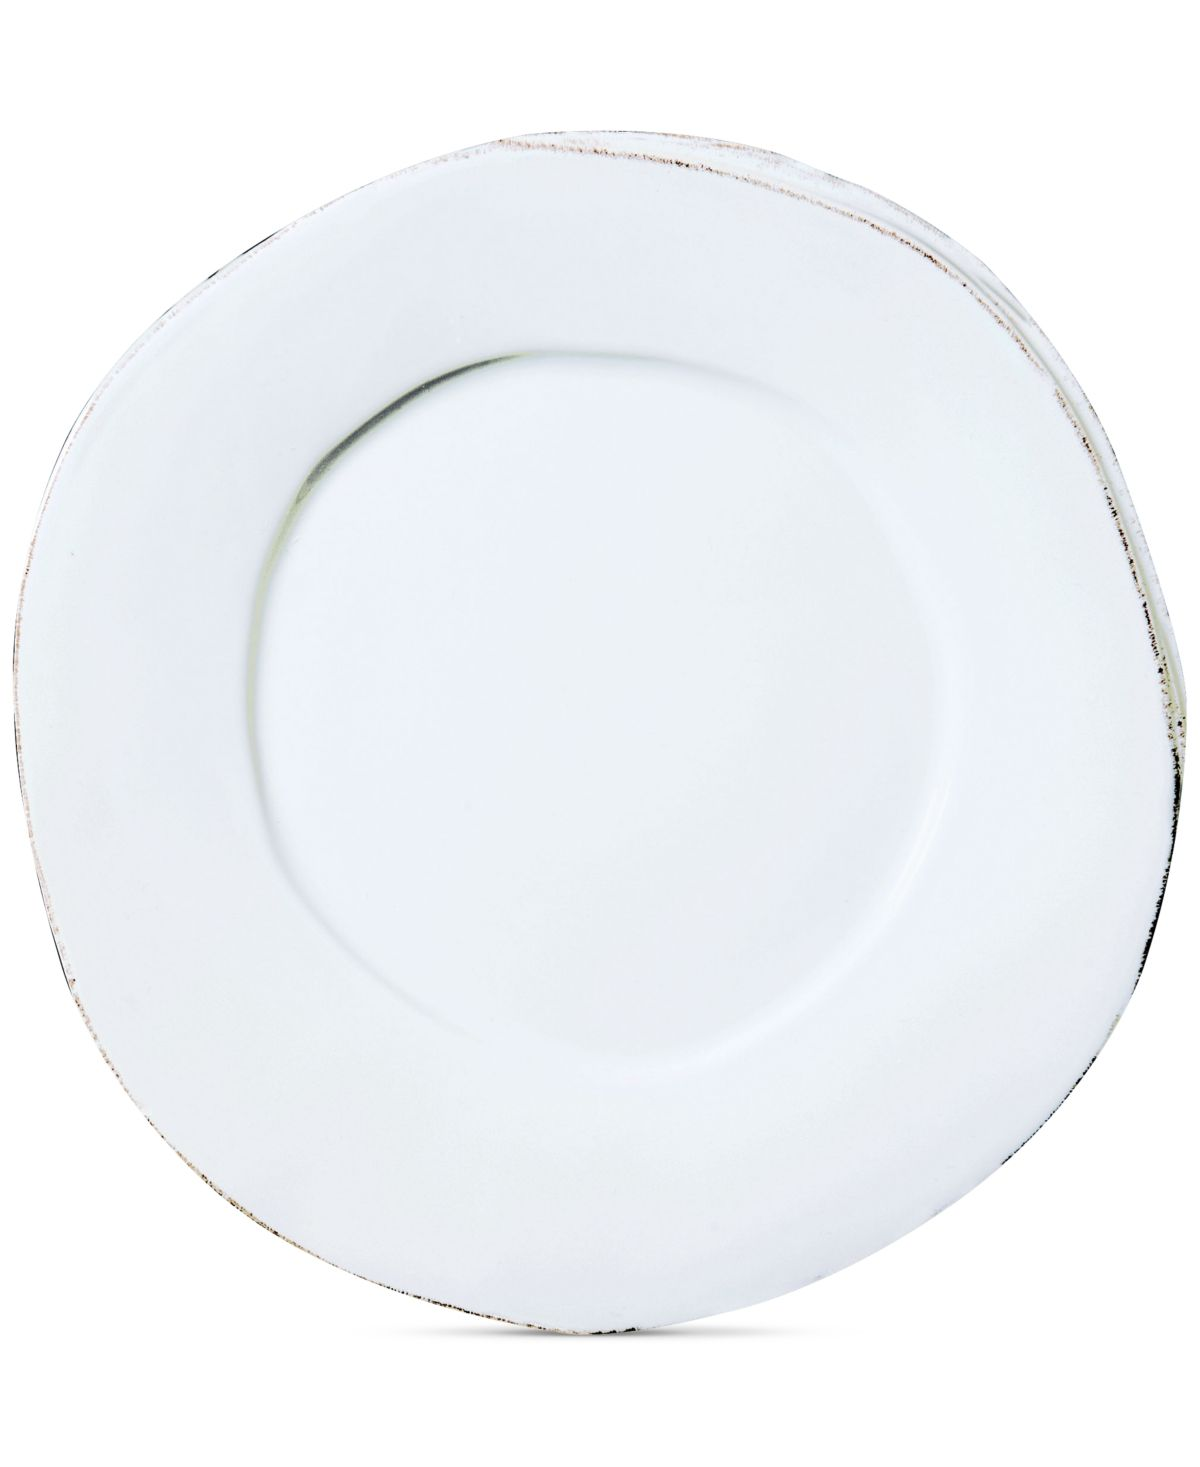 Vietri Lastra Dinnerware Collection Reviews Fine China Macy S In 2020 Vietri Dinnerware White Dinner Plates